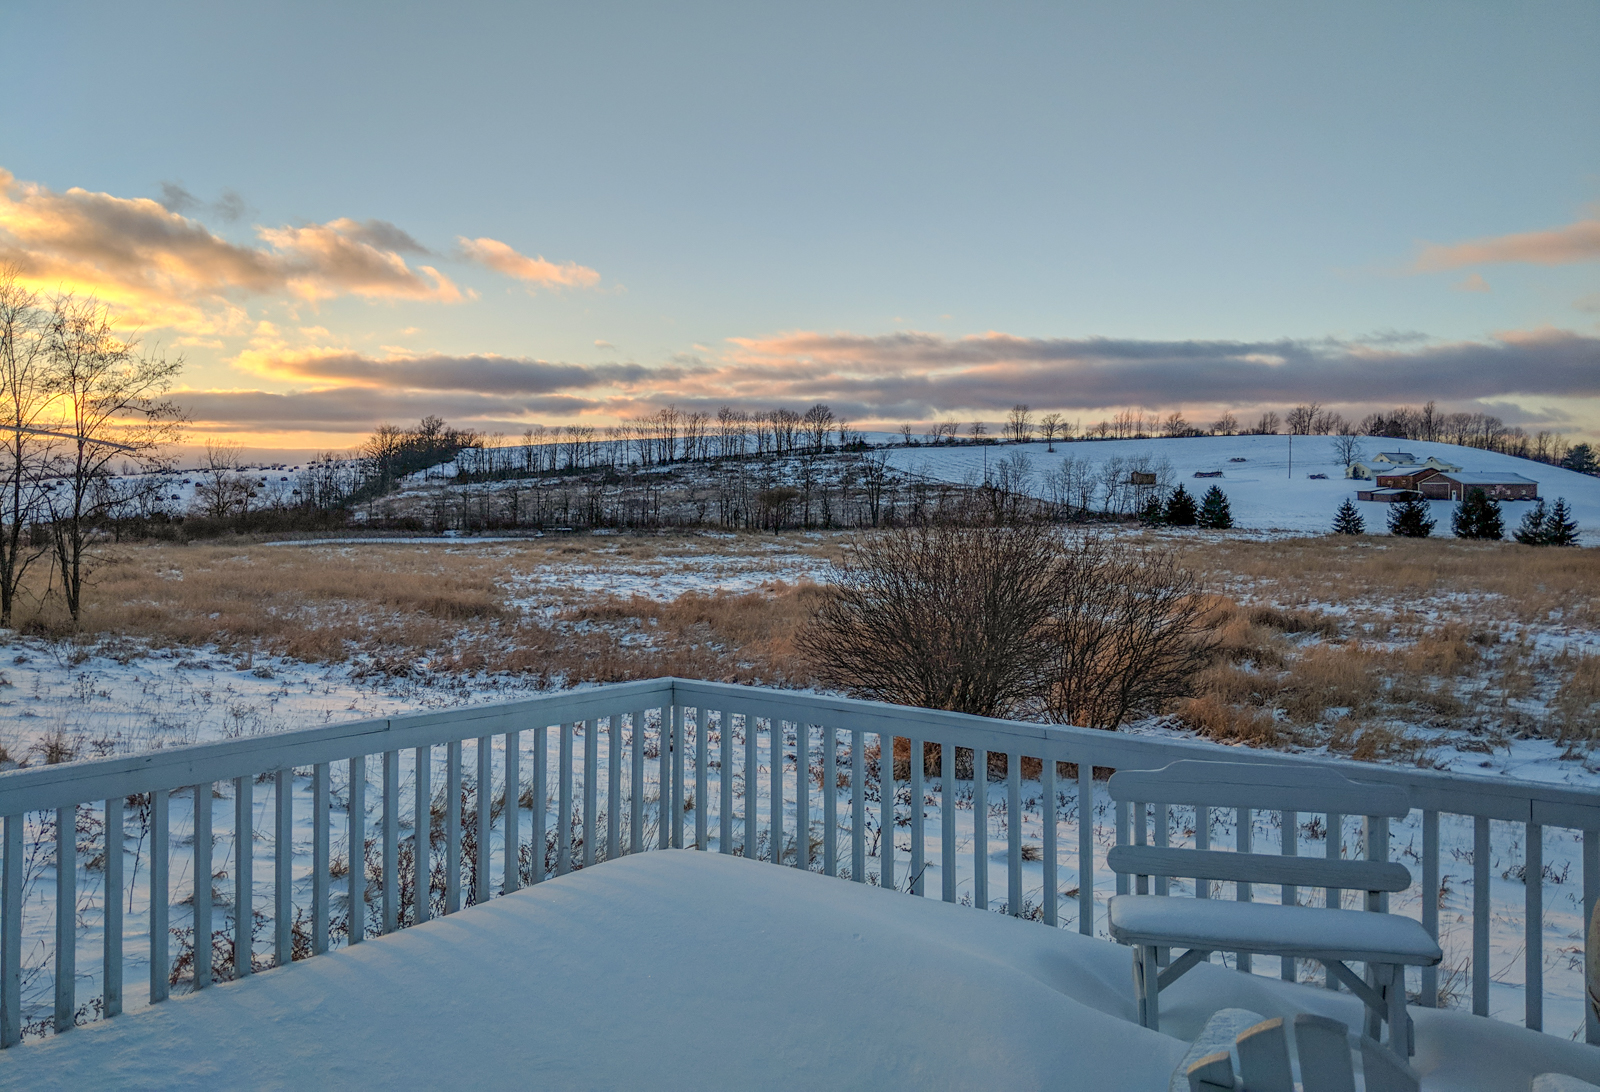 View from the back deck of the retreat center this winter